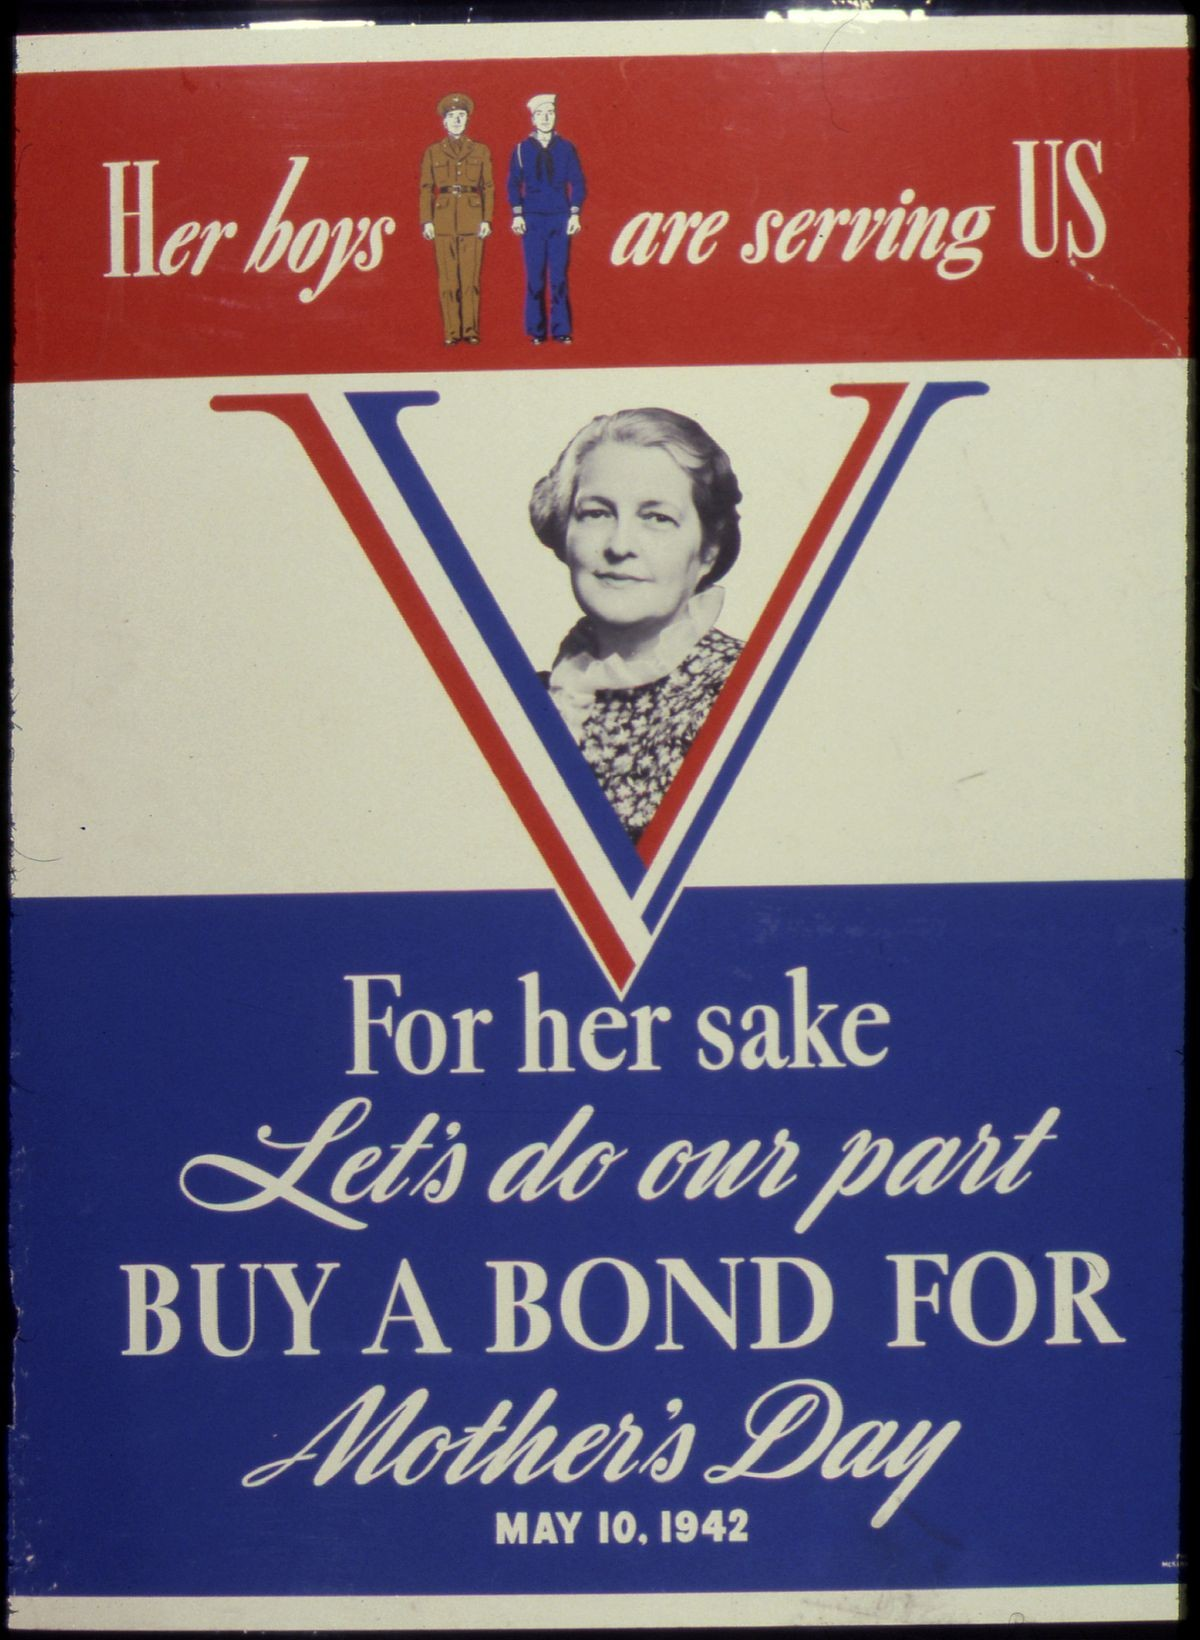 1200px Her Boys are Serving US For Her Sake Let s do Our Part Buy A Bond For Mother s Day May 10 1942 NARA